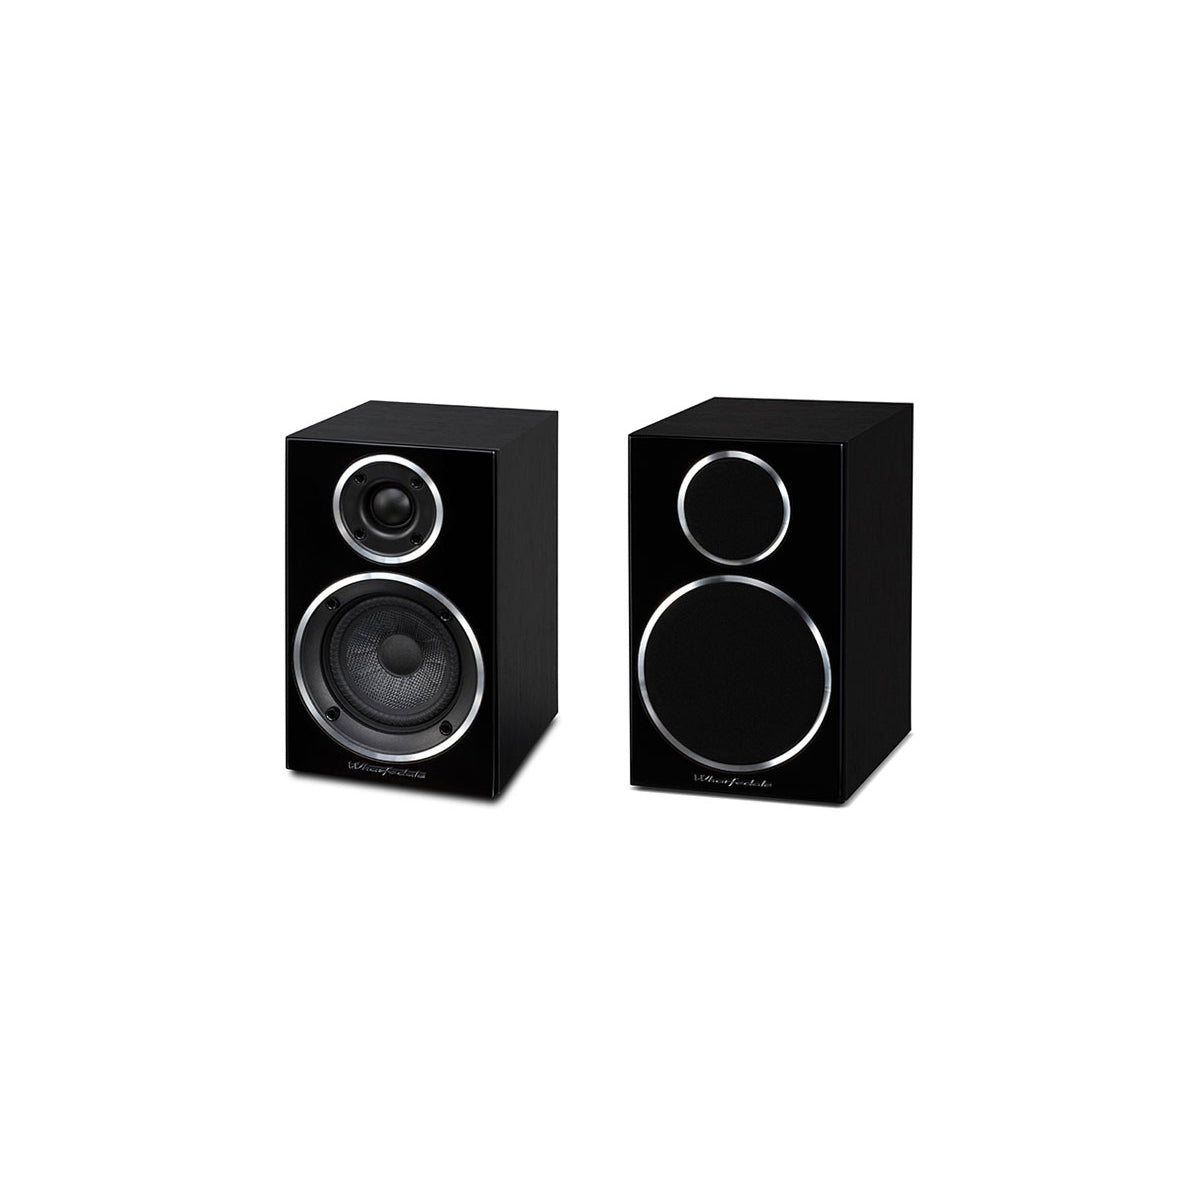 Wharfedale Diamond 210 Compact Bookshelf Speakers